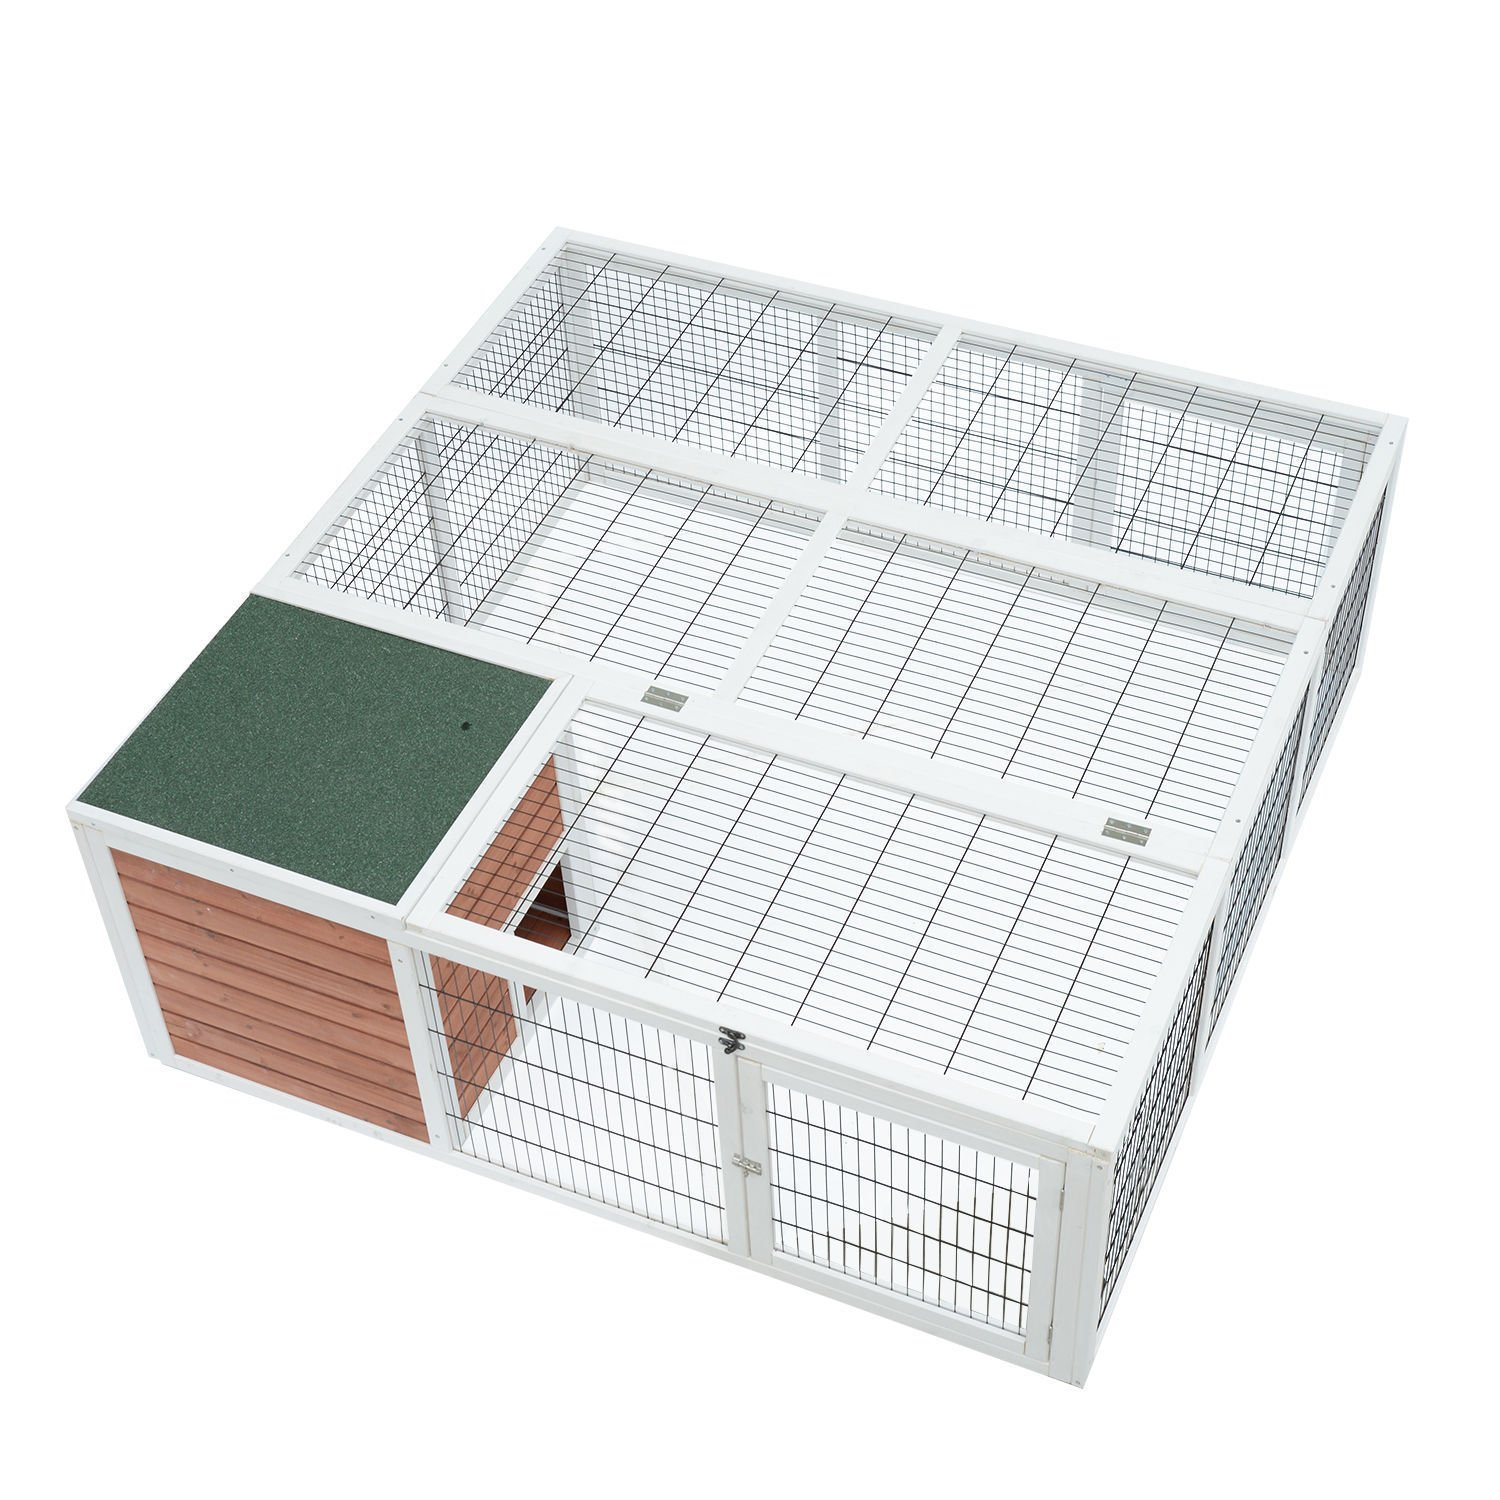 PawHut 64'' Wooden Outdoor Rabbit Hutch Playpen With Run And Enclosed Cover by PawHut